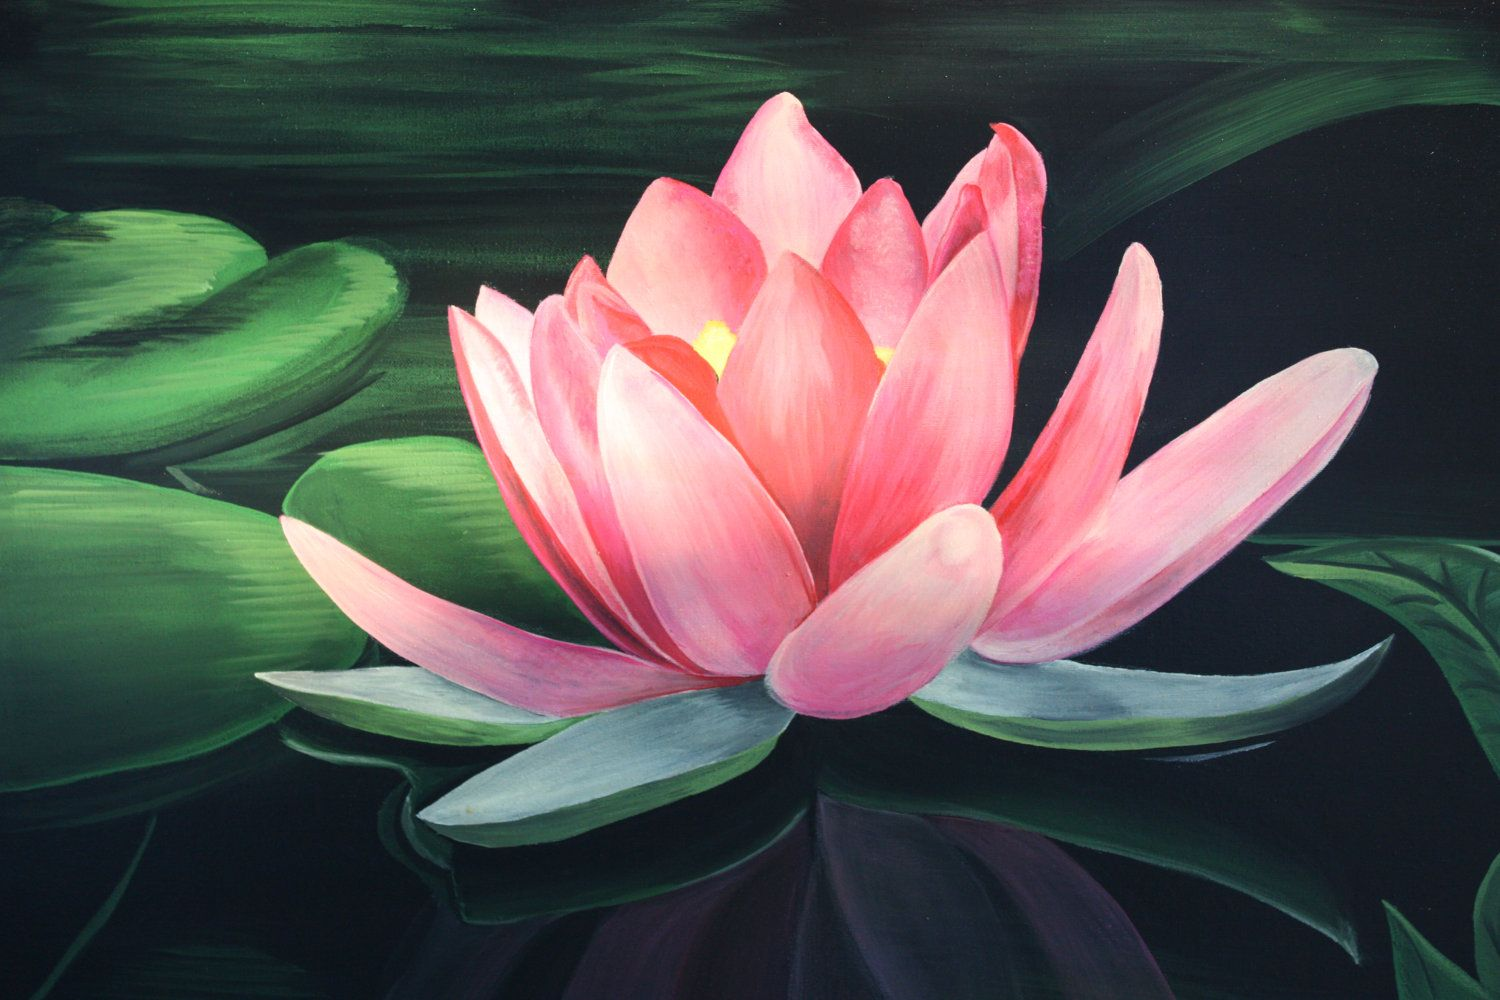 Lotus Flower art Flower HD Wallpapers, Images, PIctures